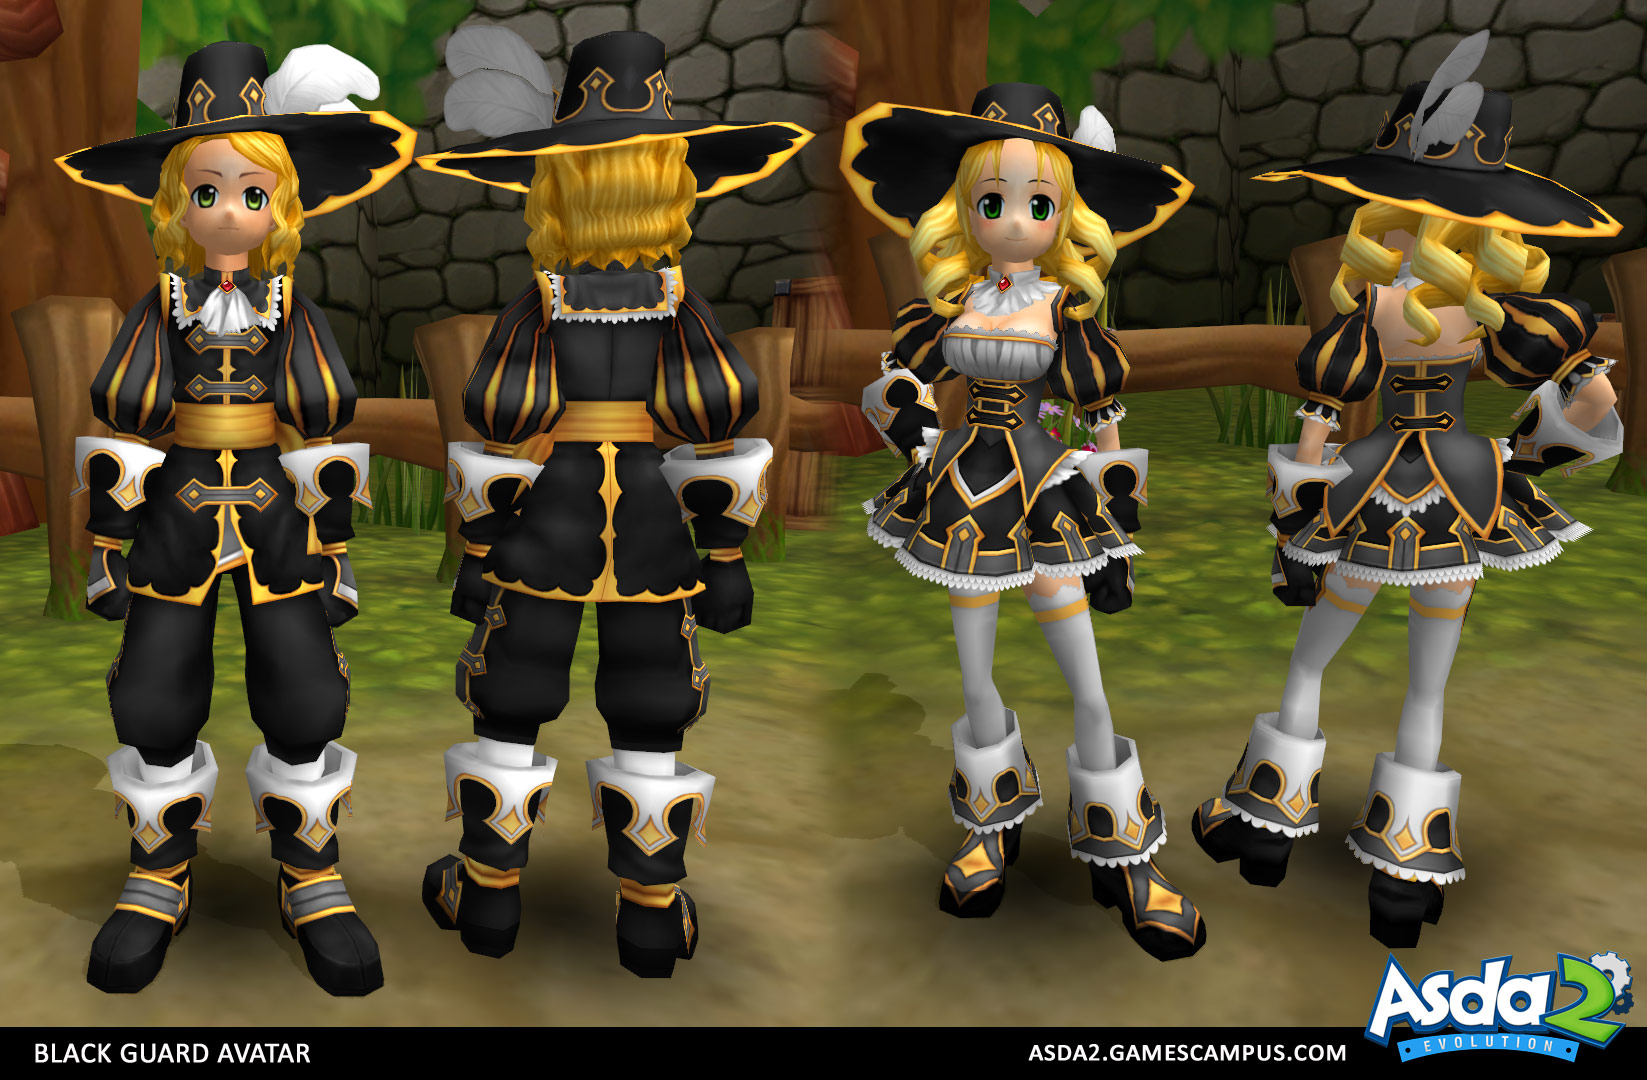 Best Anime MMORPG - Asda 2 - Black Guard Set